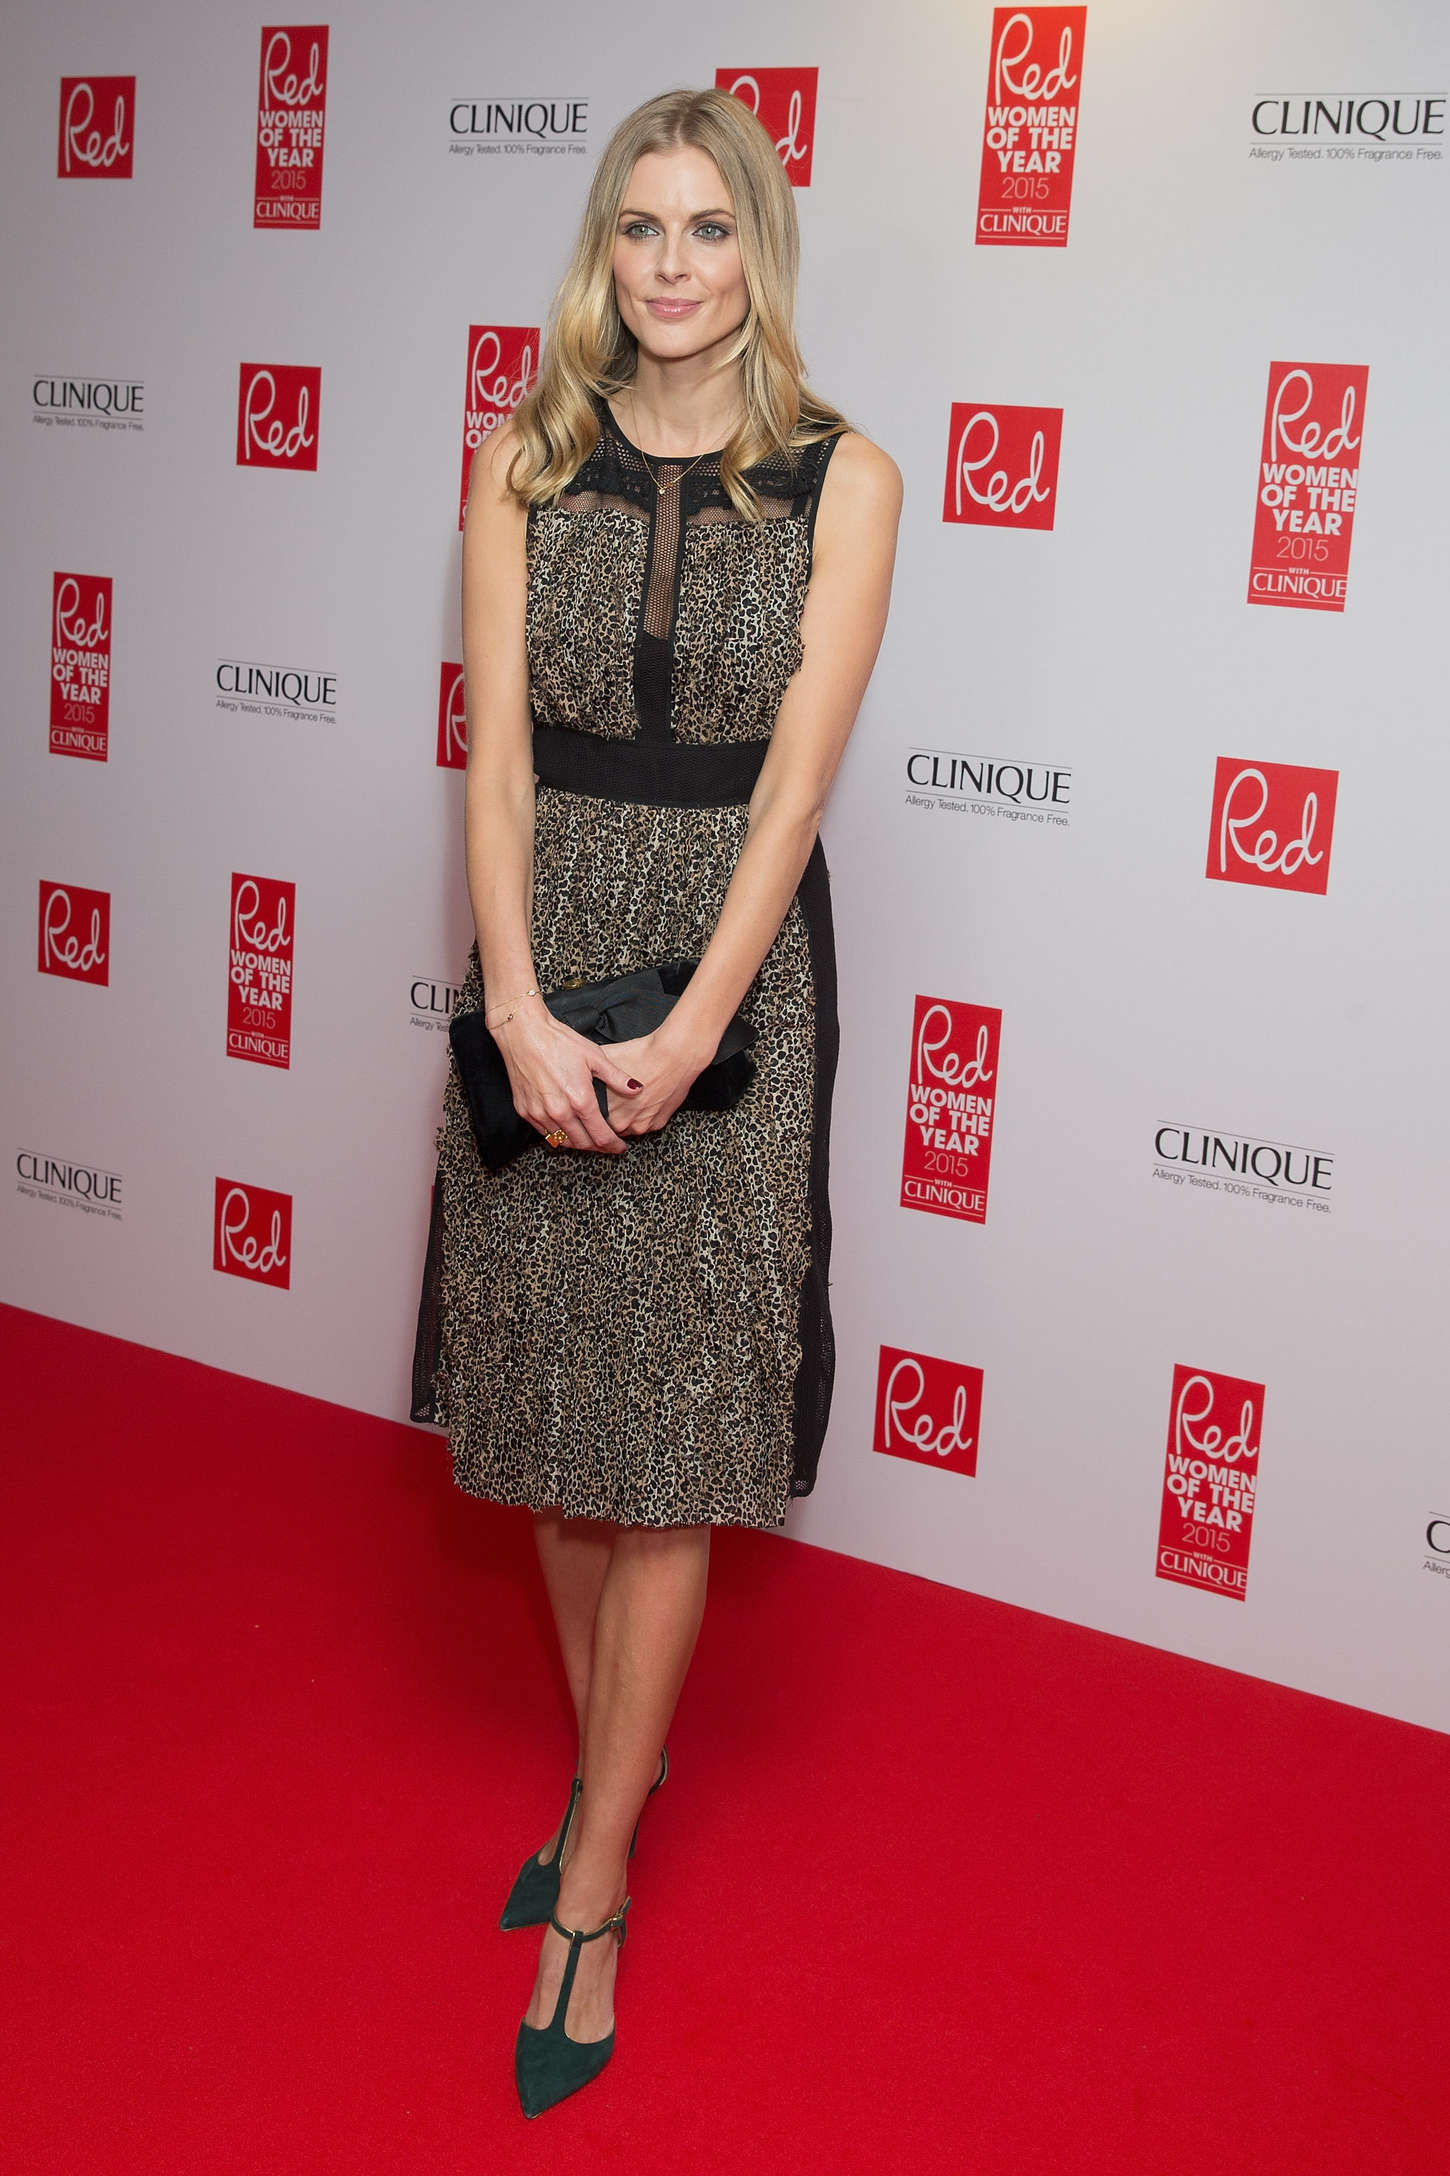 Donna Air Red Women Of The Year Awards in London